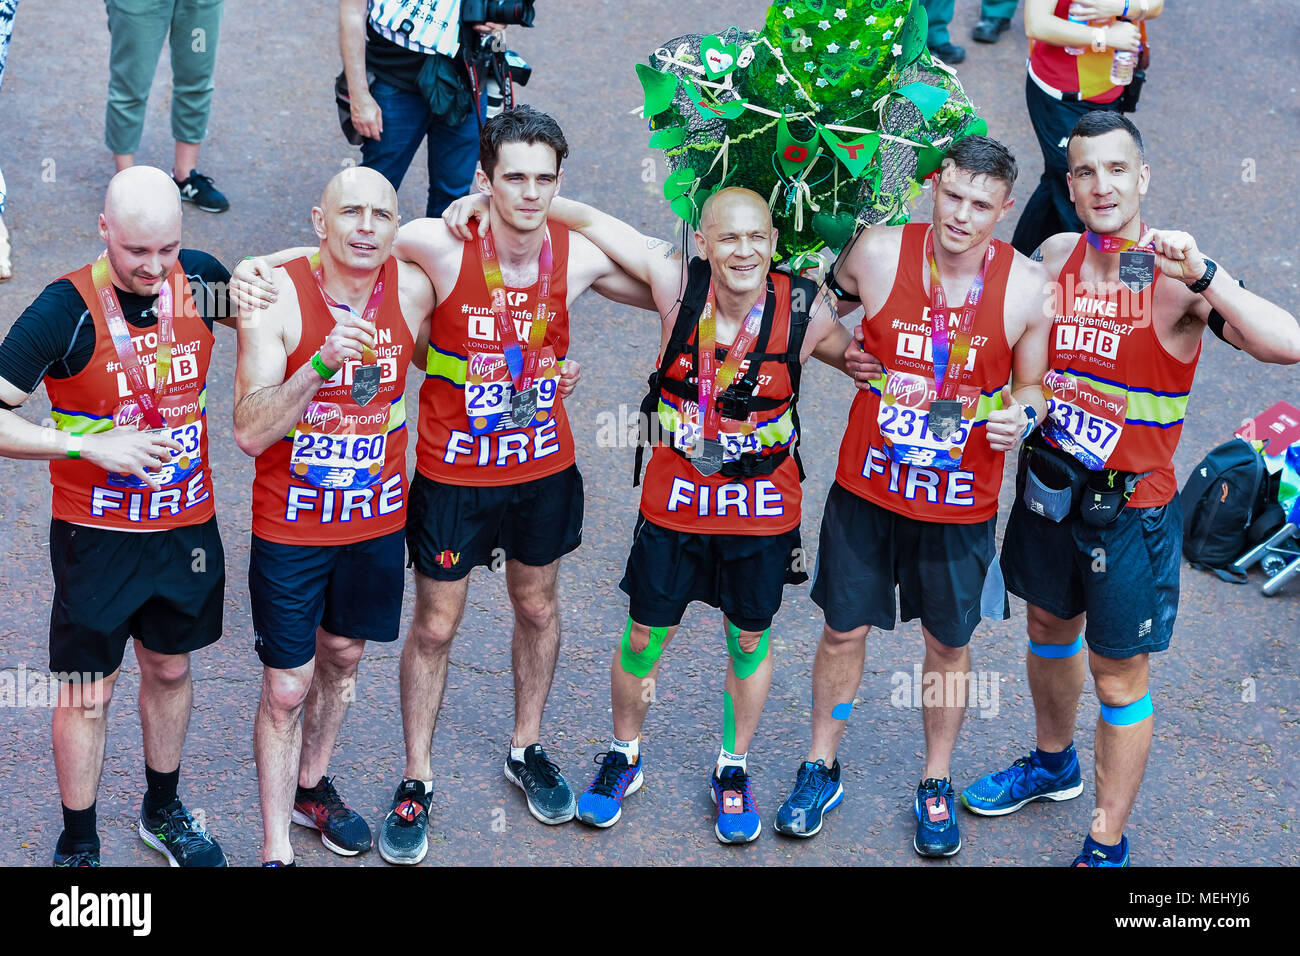 London, UK, 22 April 2018: The Firefight Team (from left) - Tom Abell, Justin O'Beirne, Michael Krikpatick, Dave Badillo, Dan Bills and Mike Dowden at the finish line during the 2018 Virgin Money London Marathon on Sunday, 22 April 2018. London, England. Credit: Taka G Wu - Stock Image